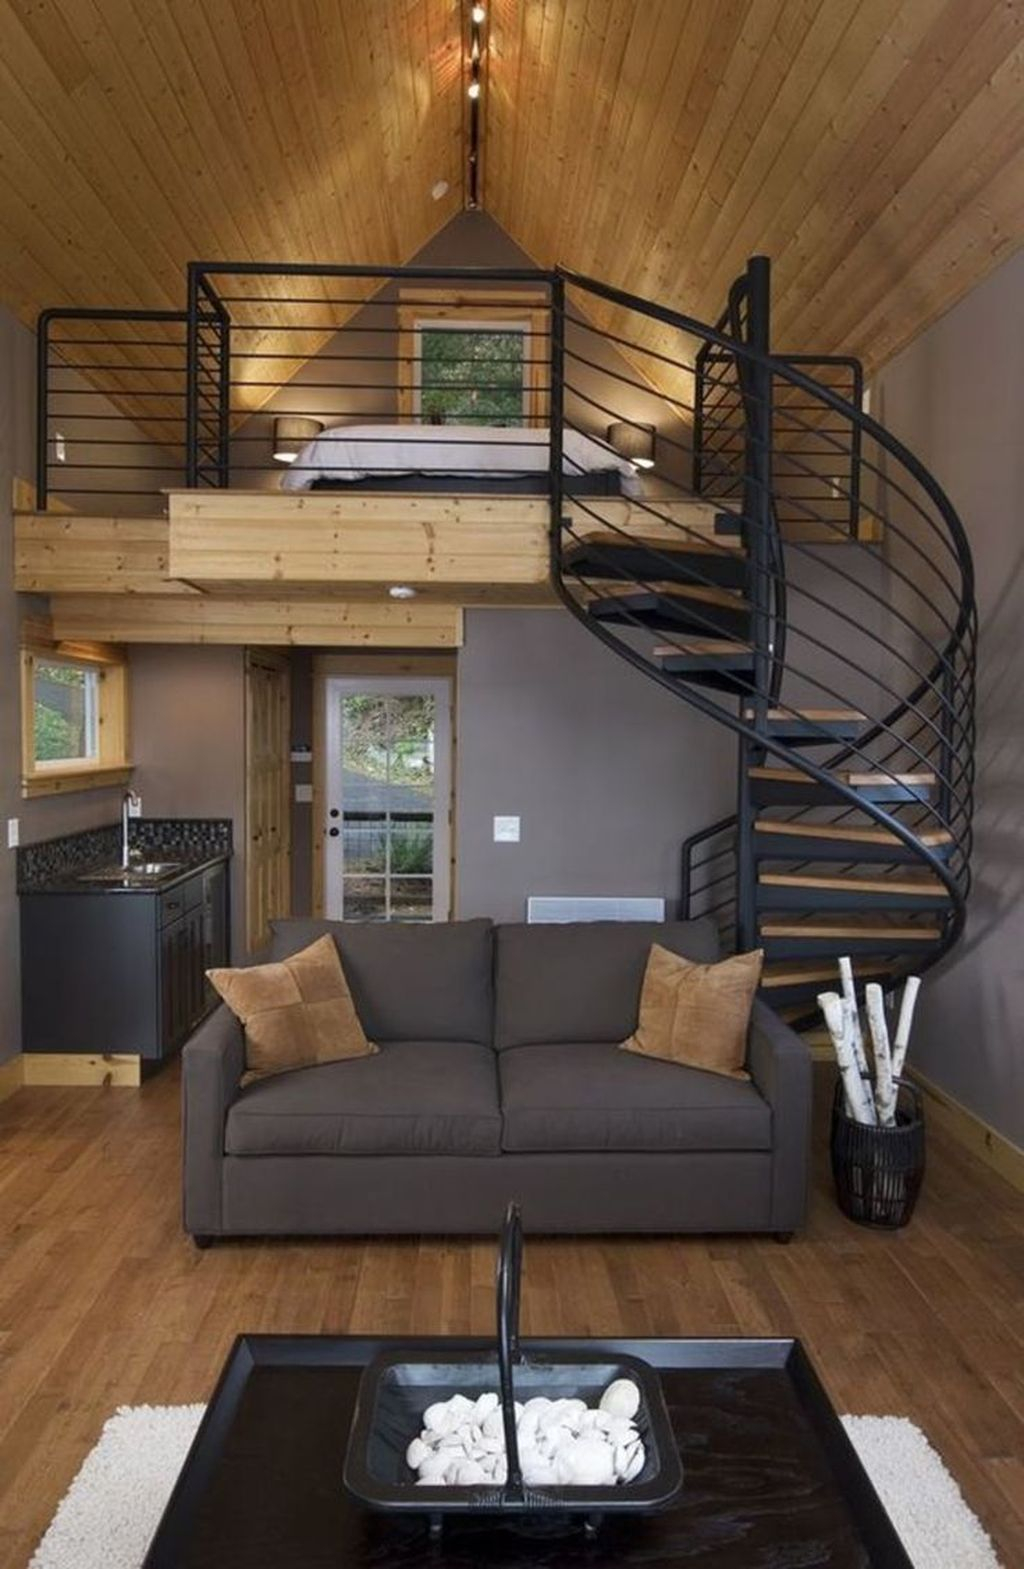 Cute Tiny Home Designs You Must See To Believe29